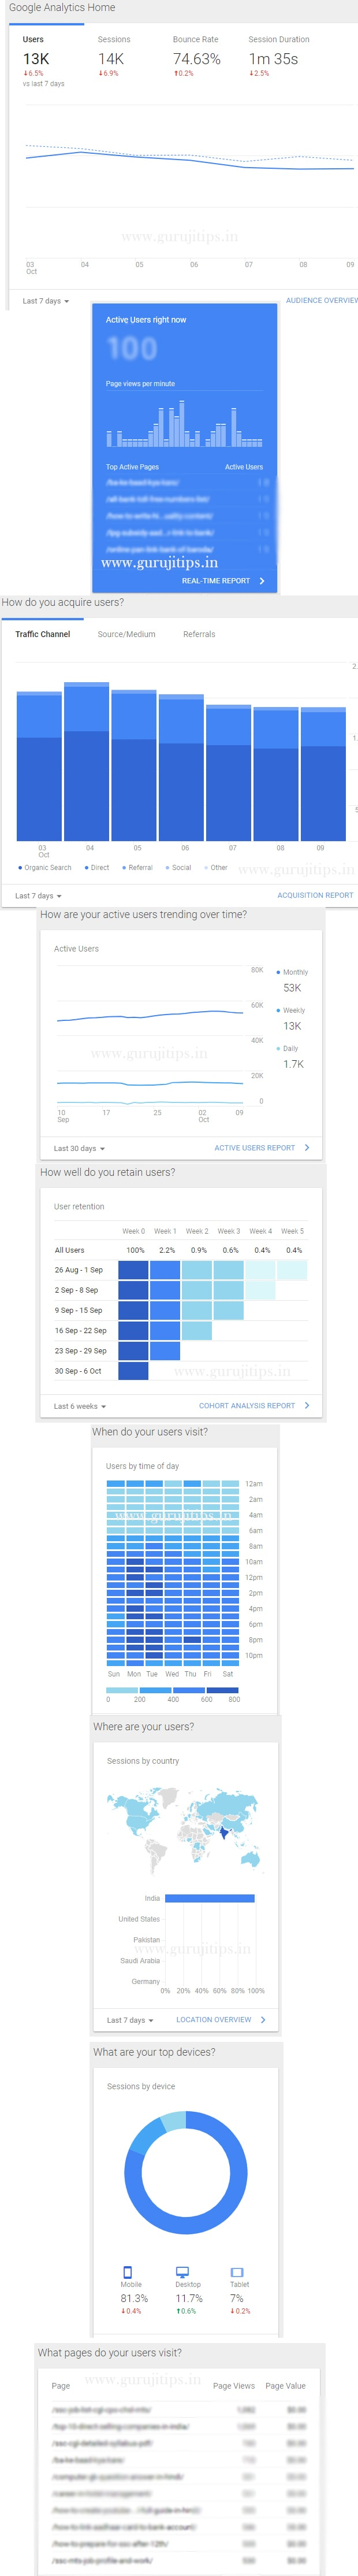 google analytic dashboard